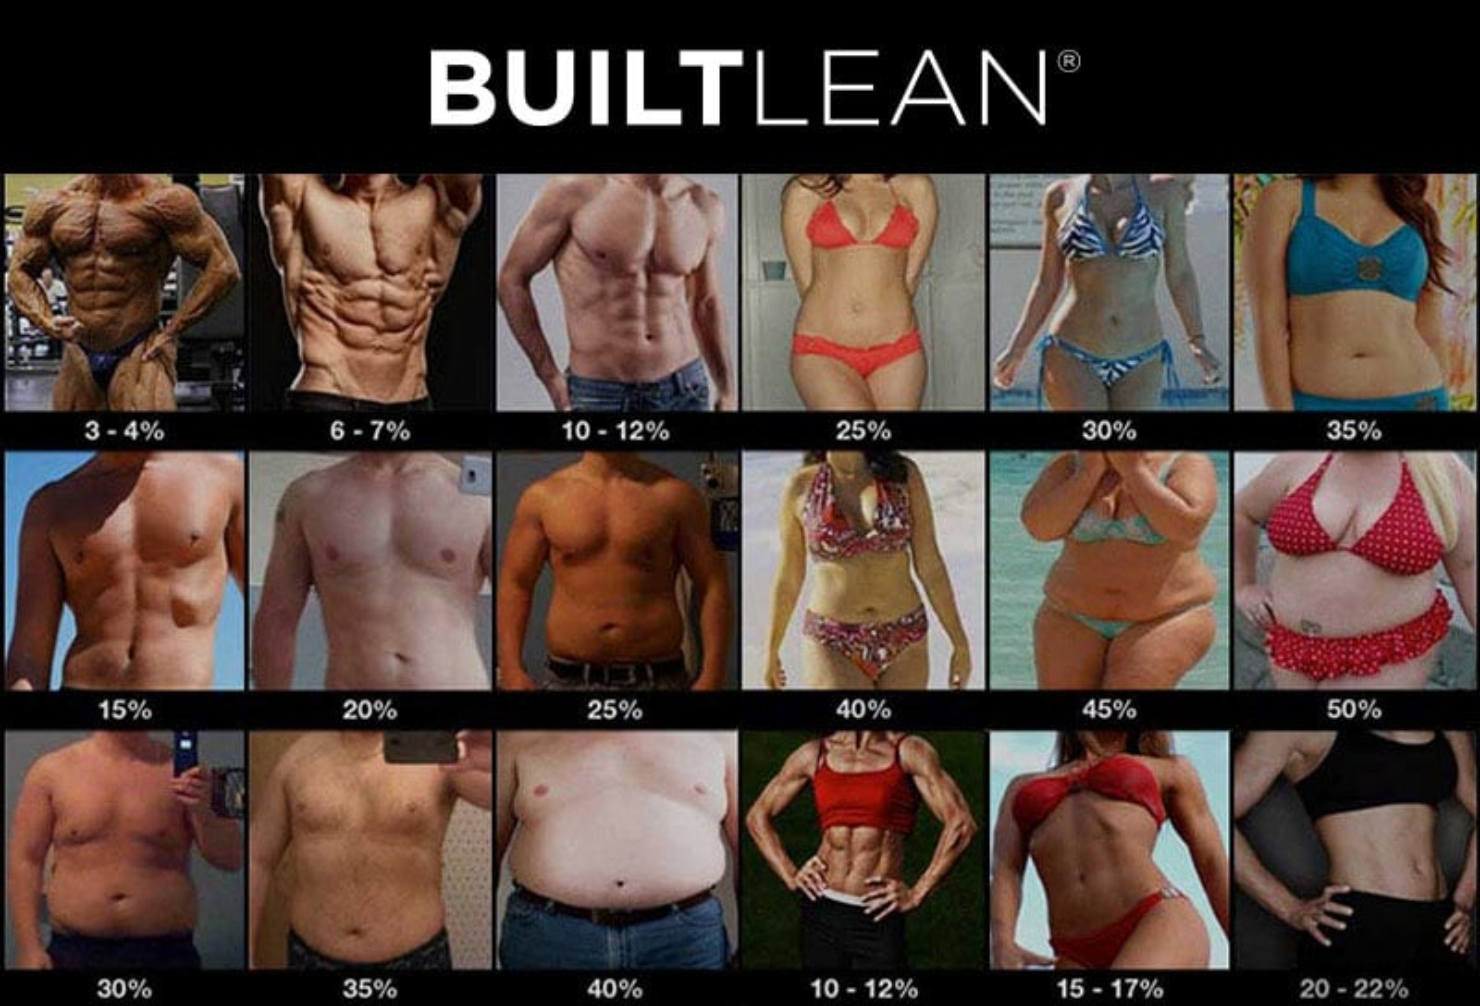 Check out this image from BuiltLean.Com to get an idea of what % body fats look like.